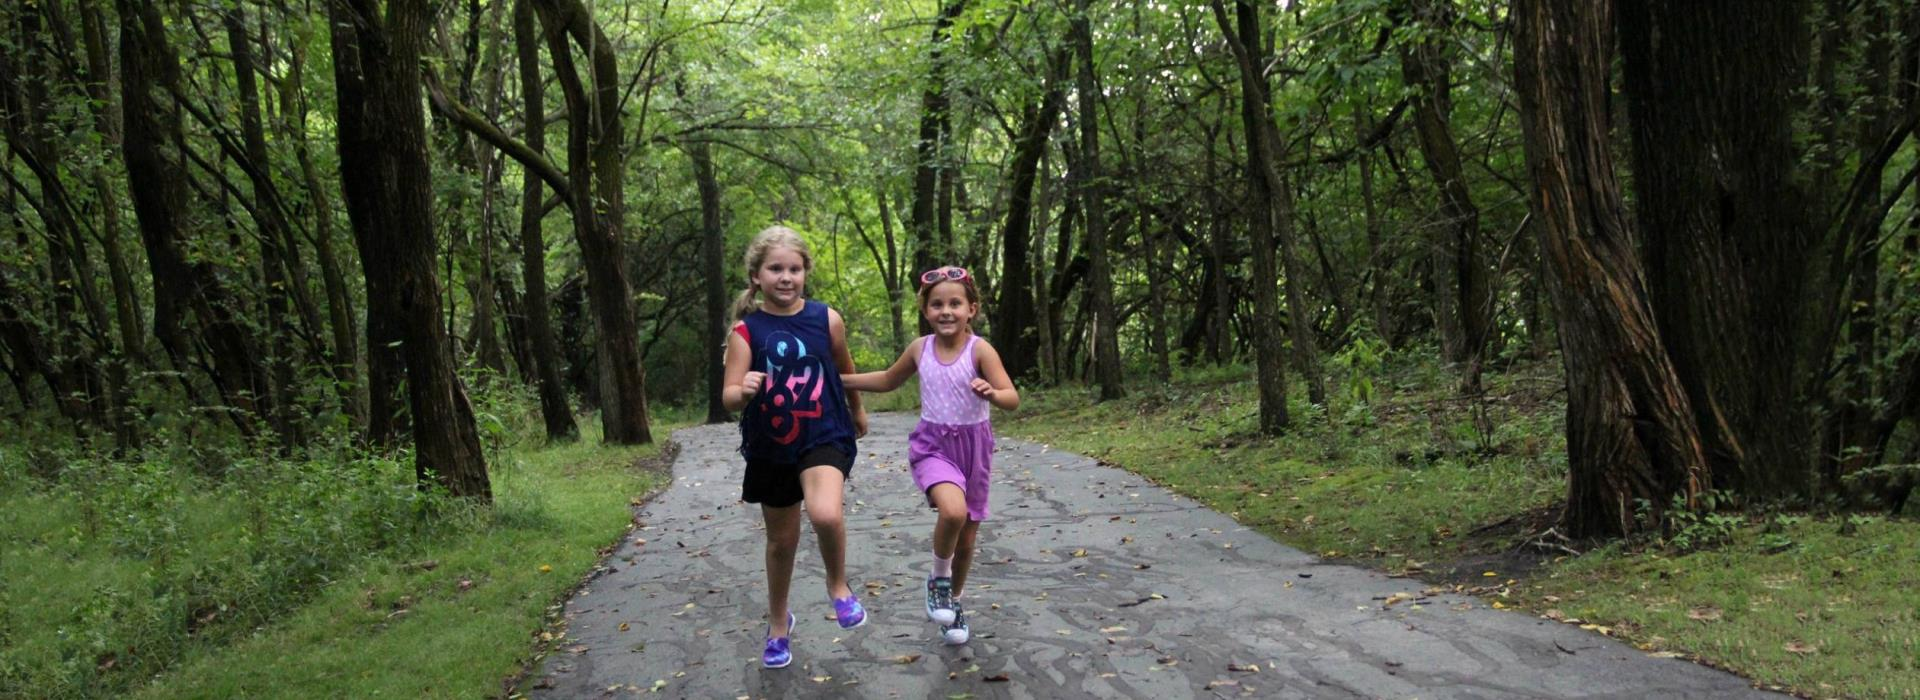 girls running on a trail